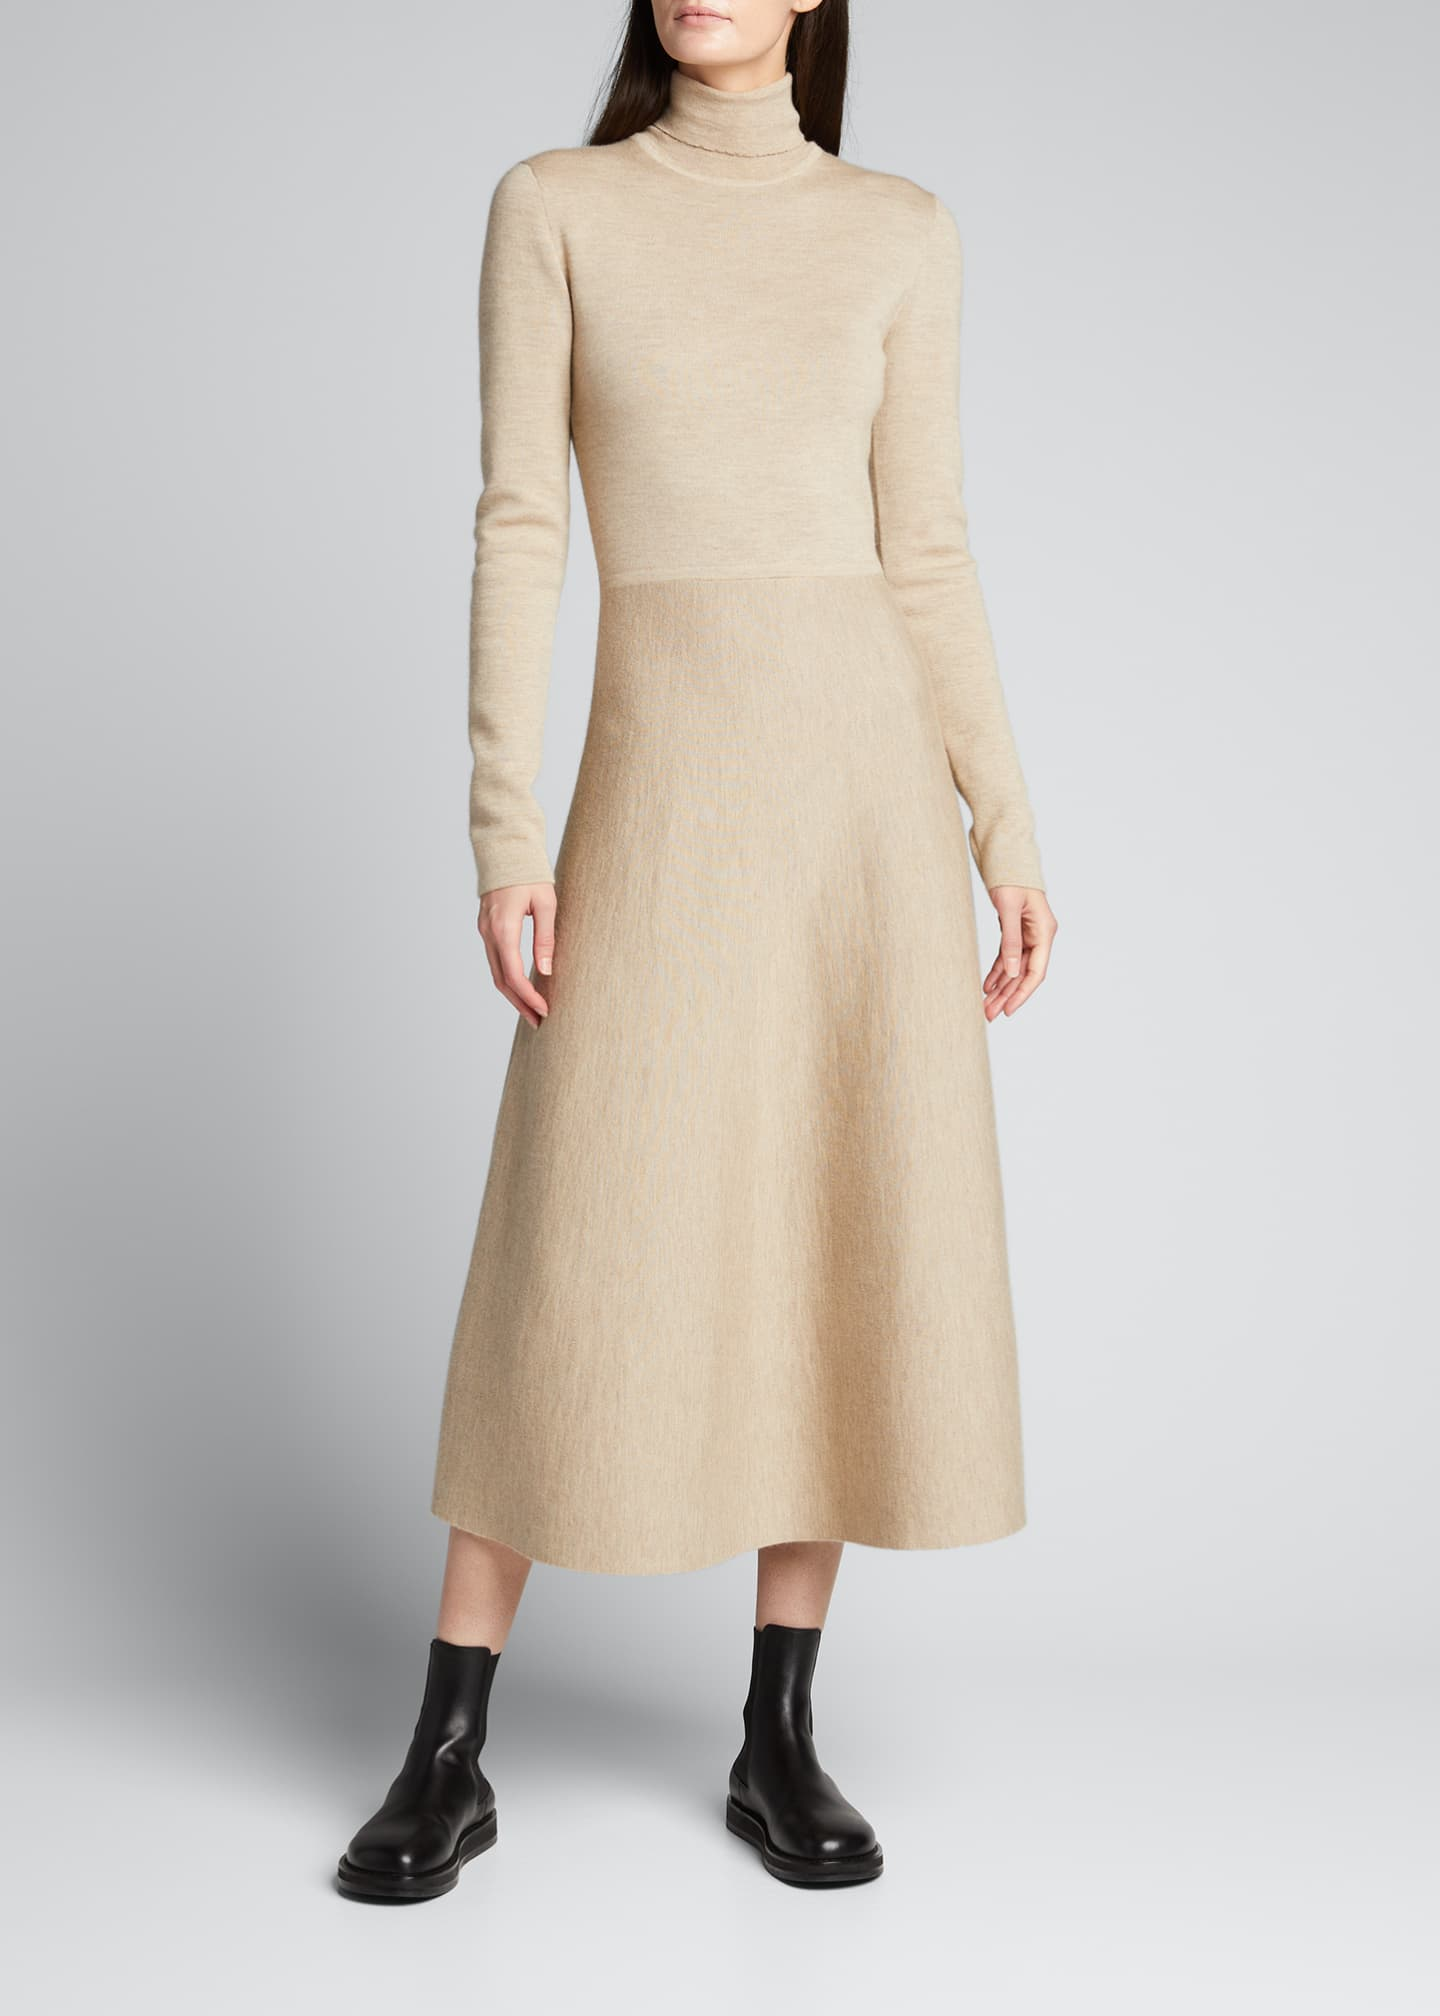 Betti Double-Knit Cashmere/Silk Turtleneck Dress